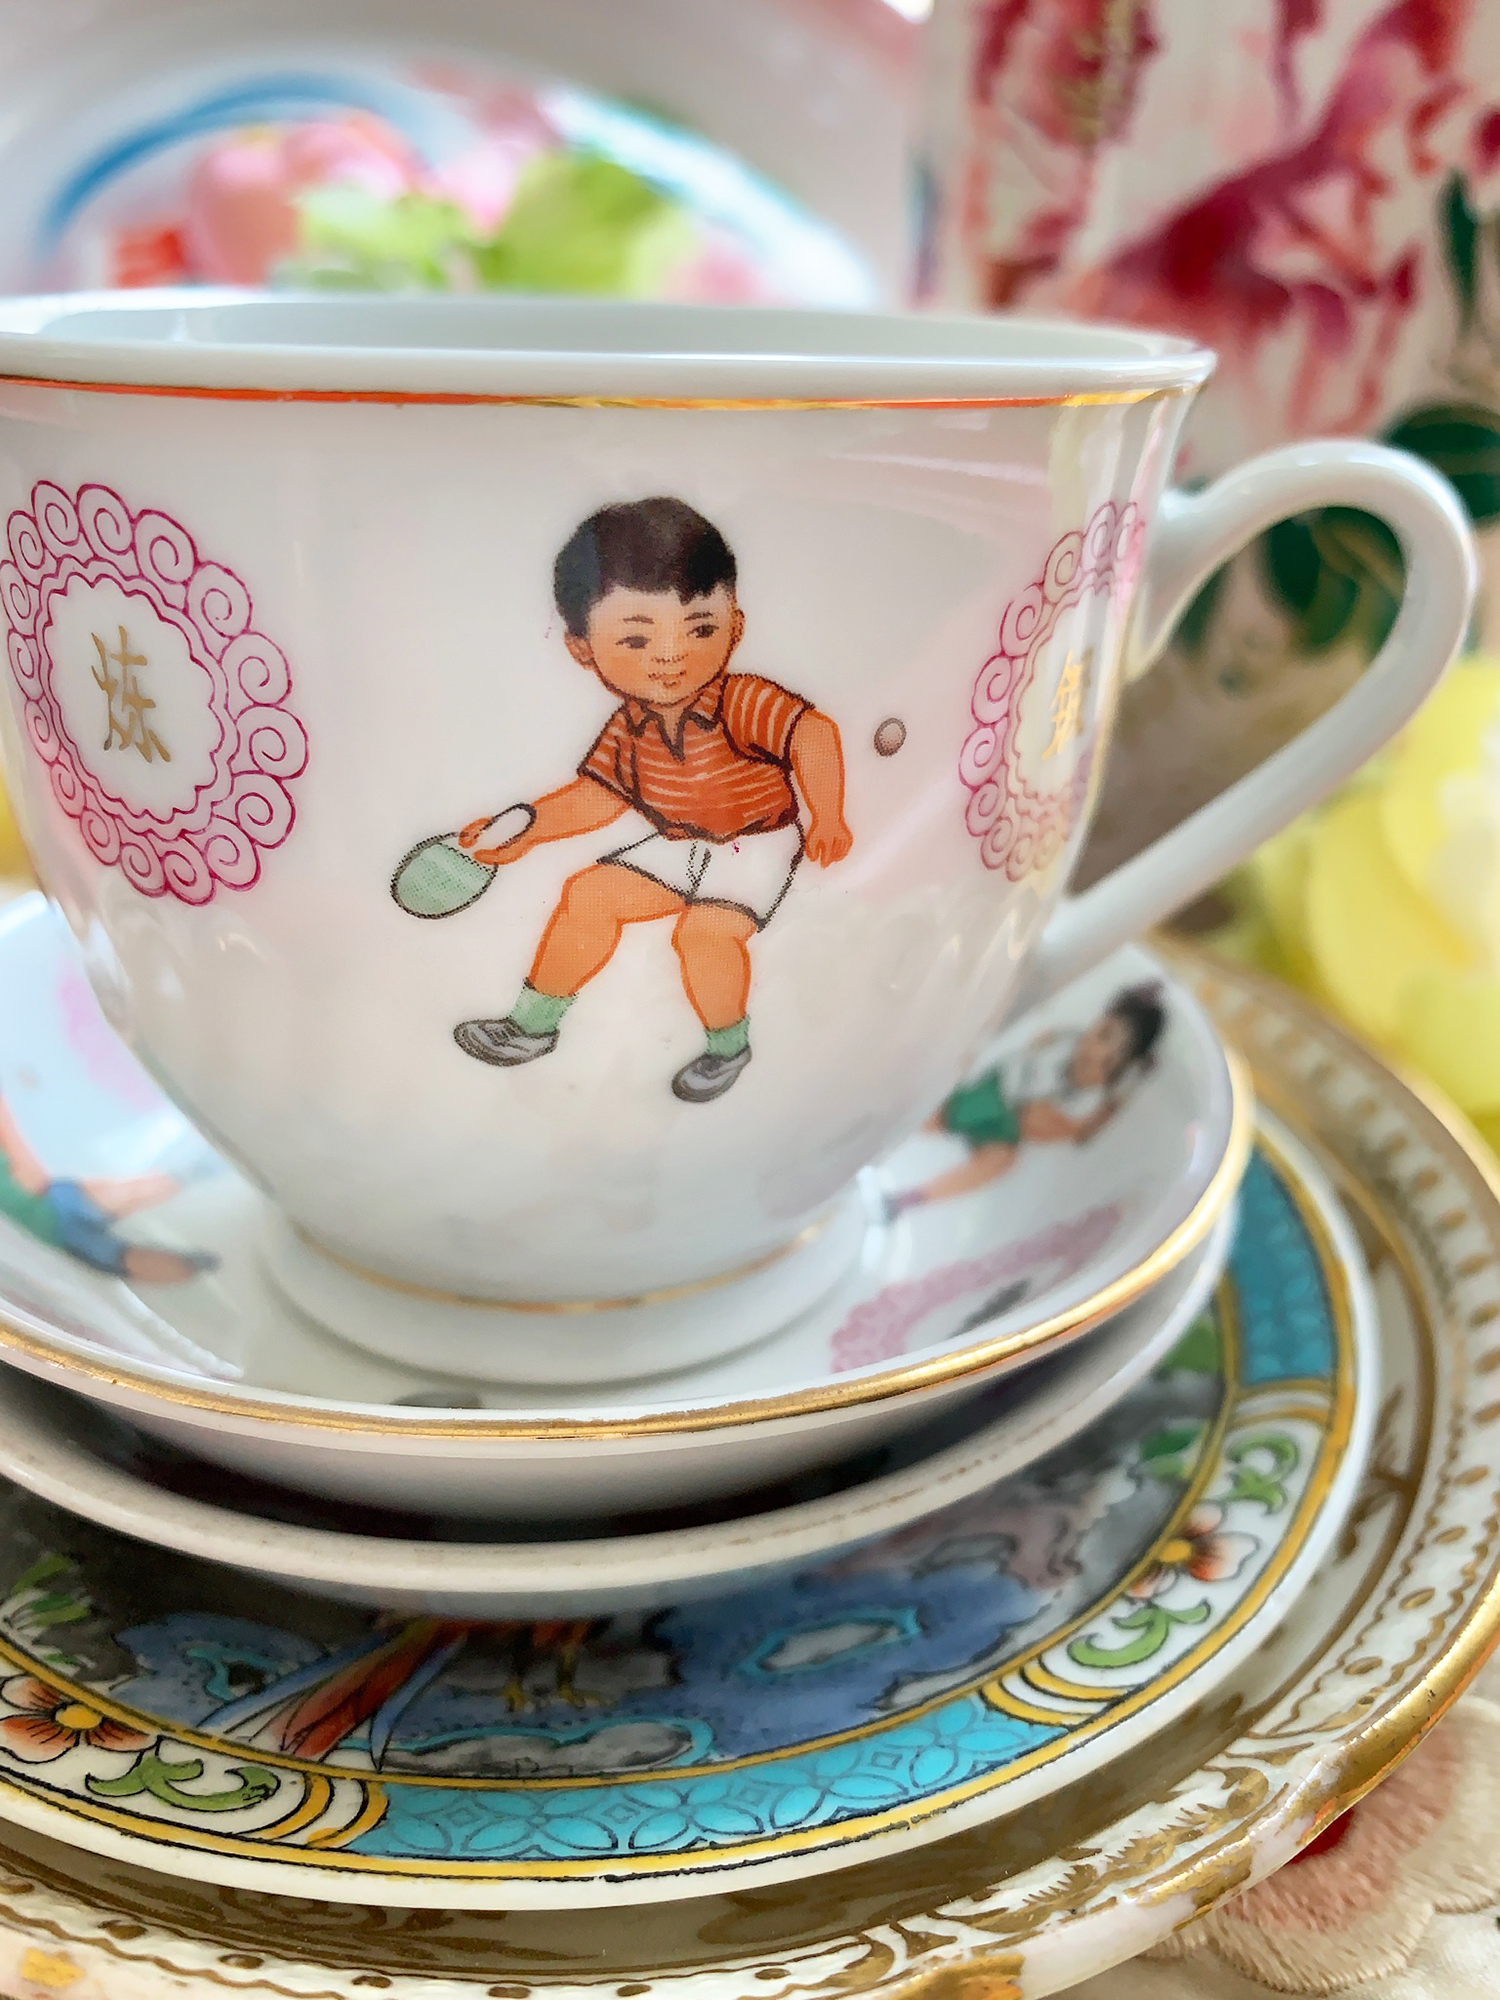 PING PONG BOY TEACUP STILL LIFE.jpg